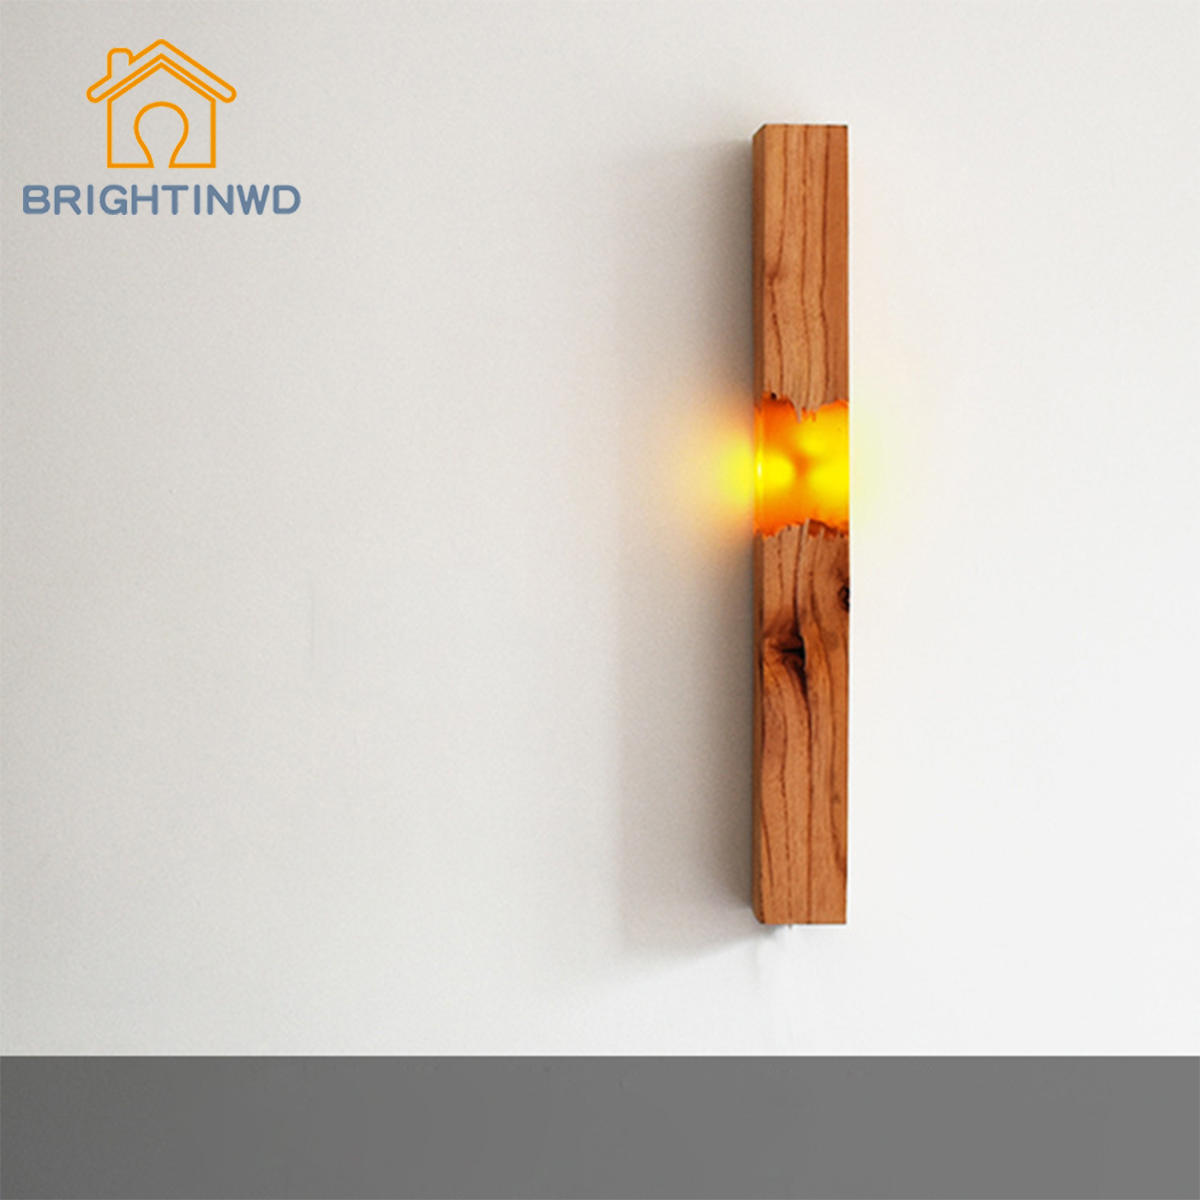 New Creative Resin And Solid Wood Handmade Wall Lamps Corridor Lamps Nightlight Hand-Made Lamps Gifts